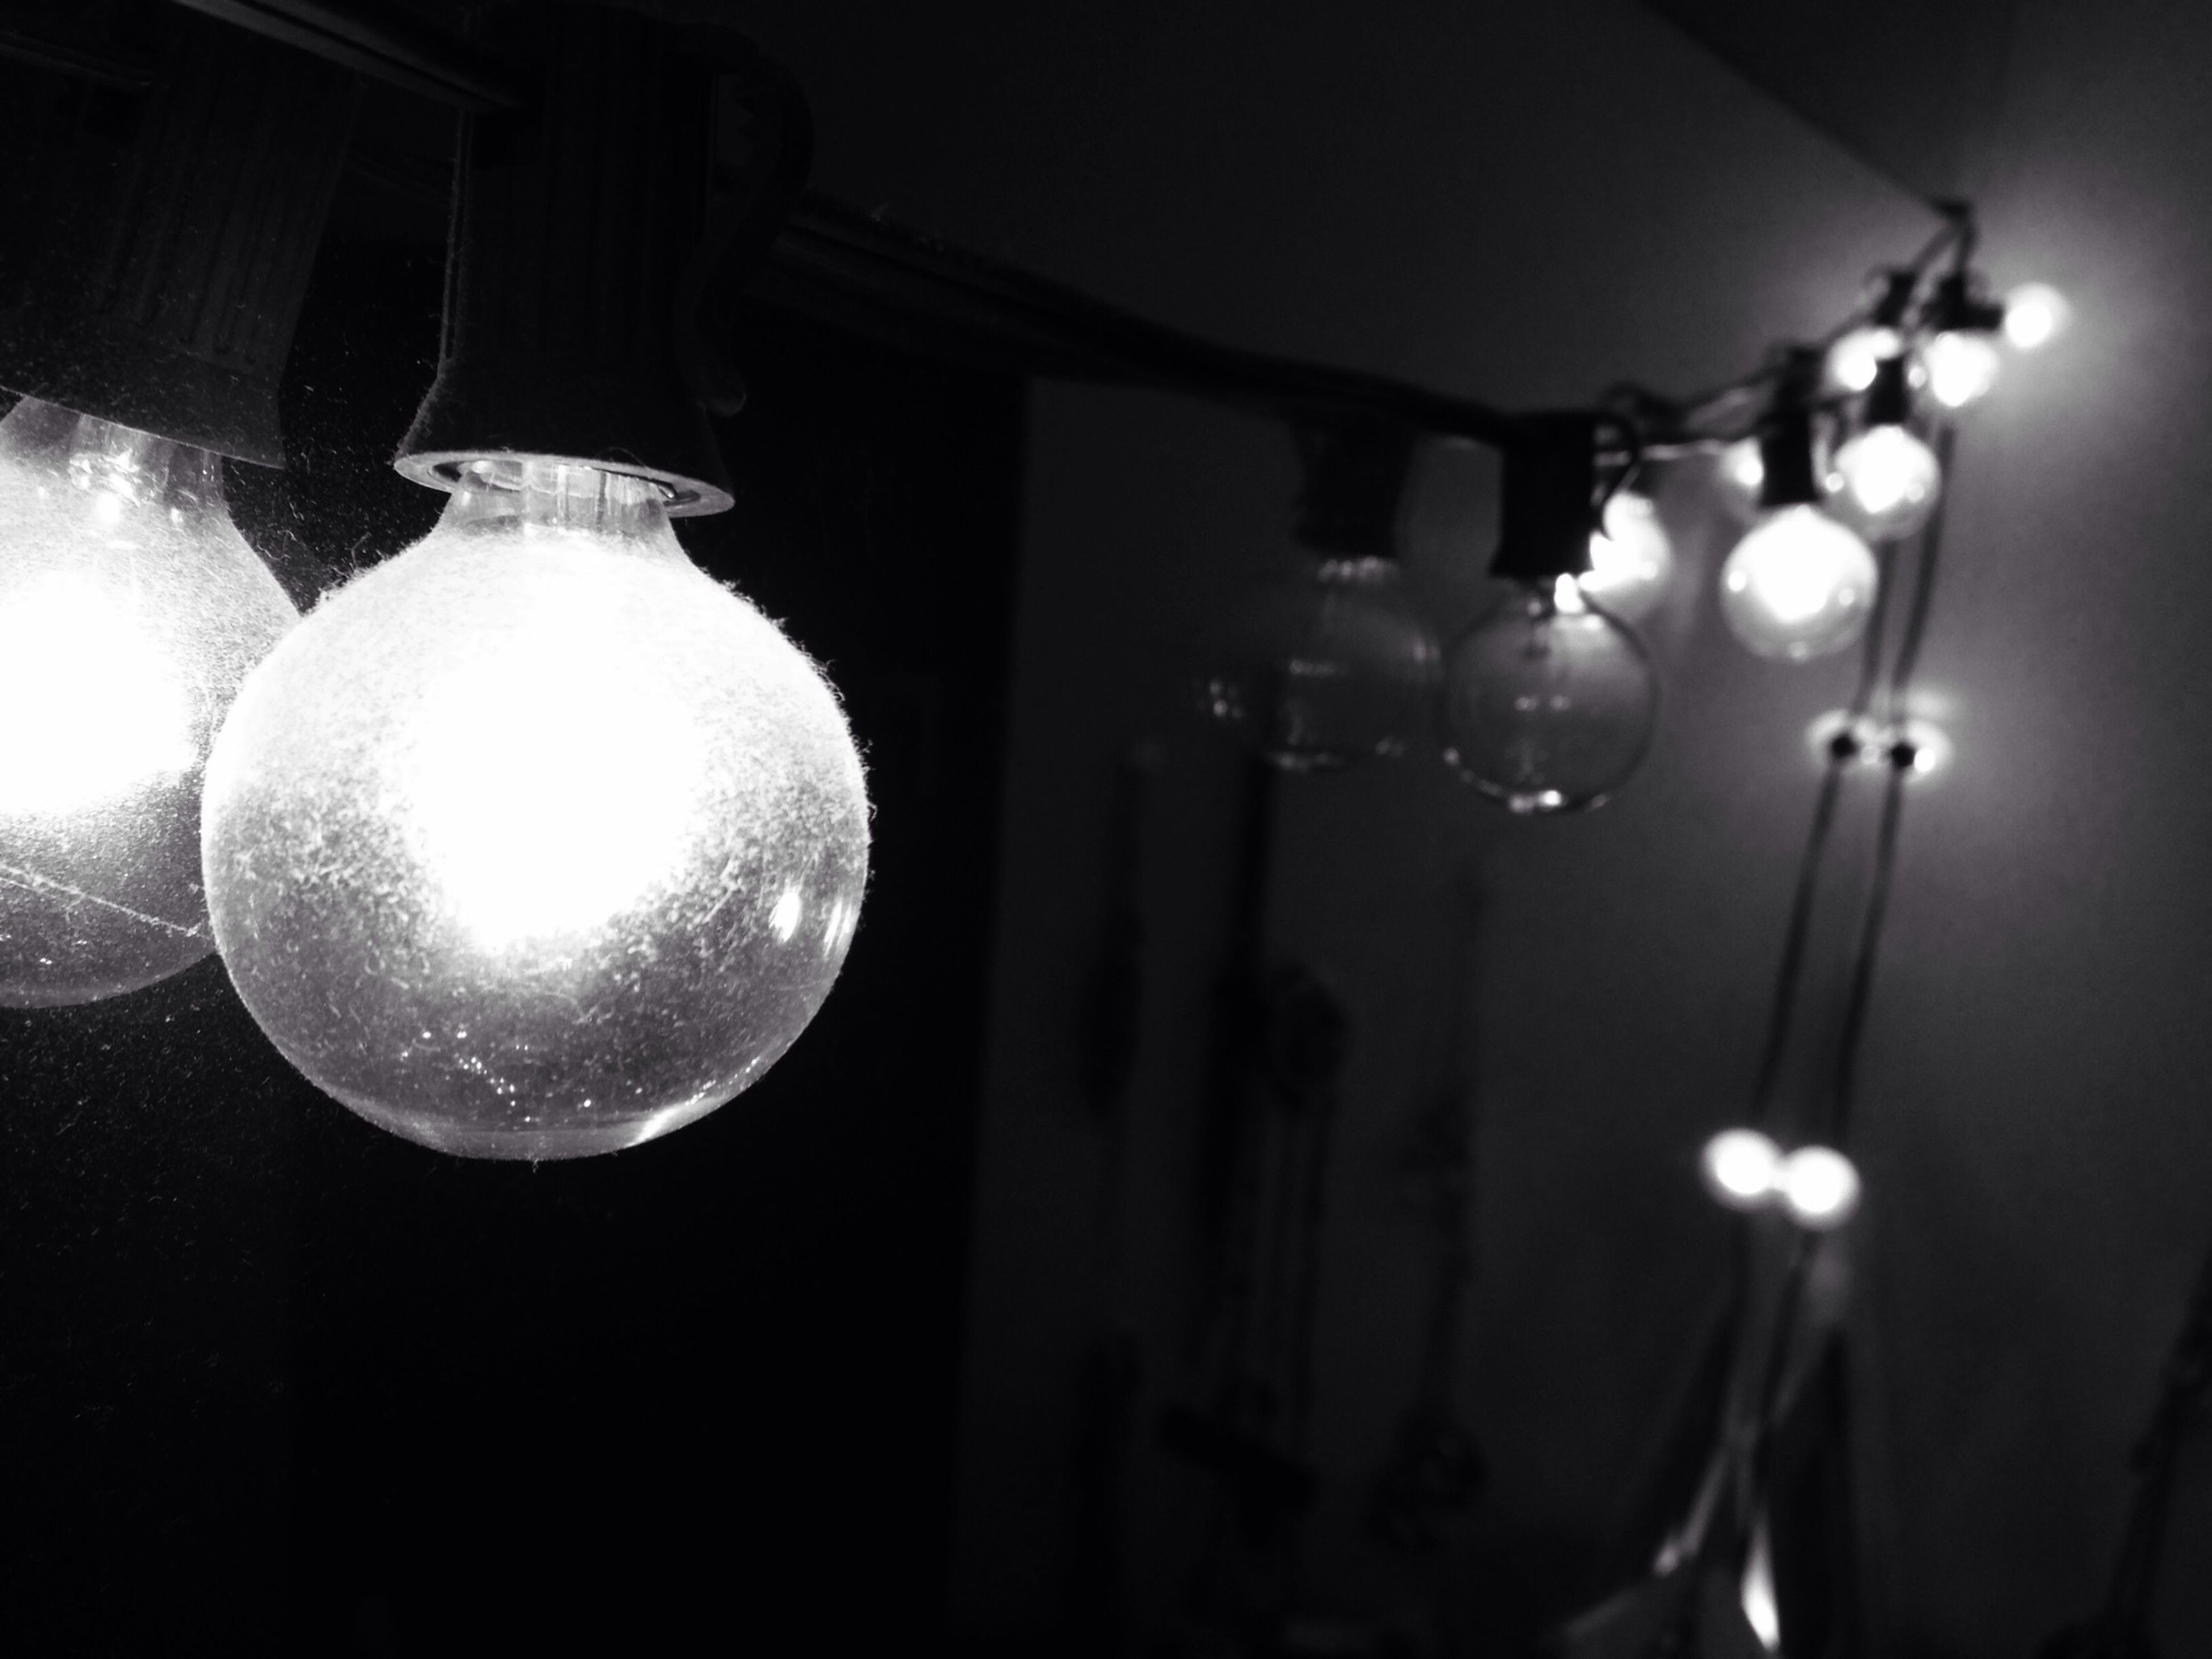 lighting equipment, illuminated, hanging, indoors, electricity, light bulb, electric lamp, decoration, electric light, low angle view, close-up, focus on foreground, home interior, chandelier, no people, light - natural phenomenon, night, ceiling, decor, lit